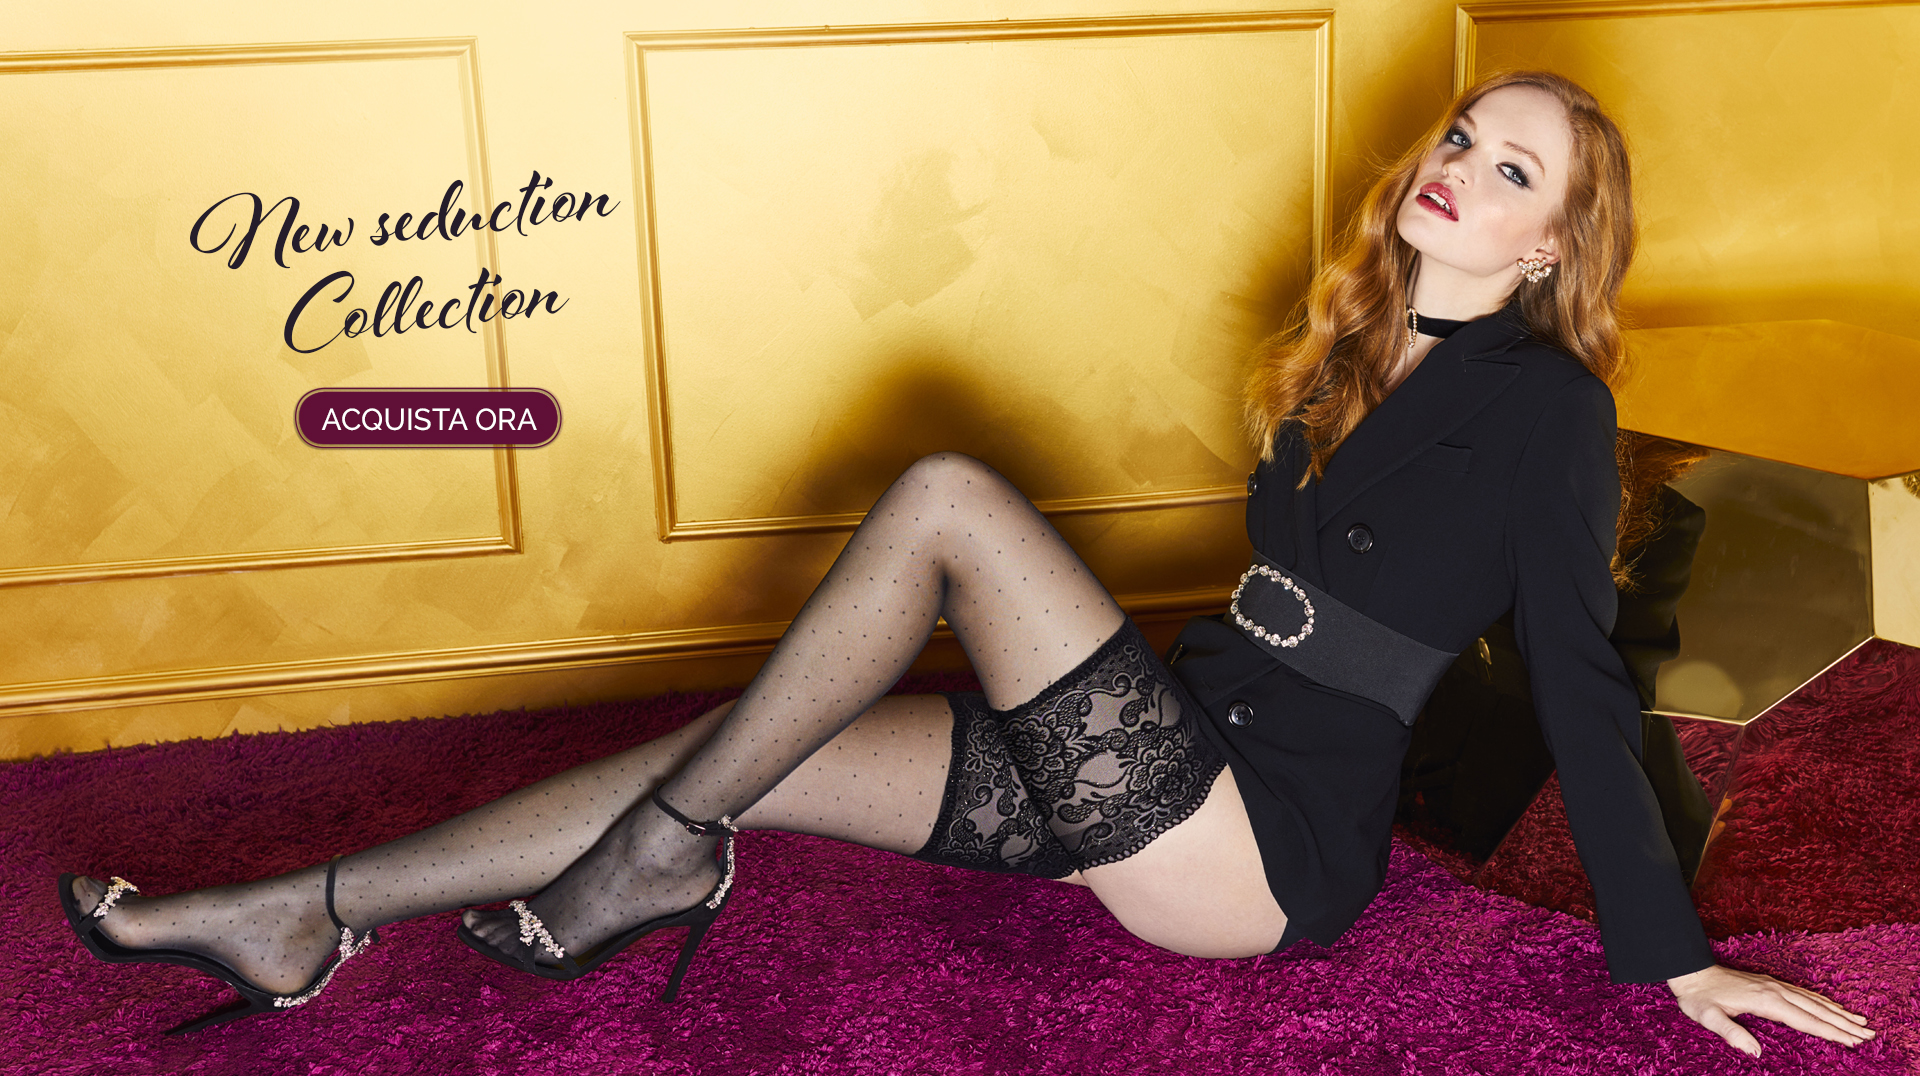 SEDUCTION COLLECTION